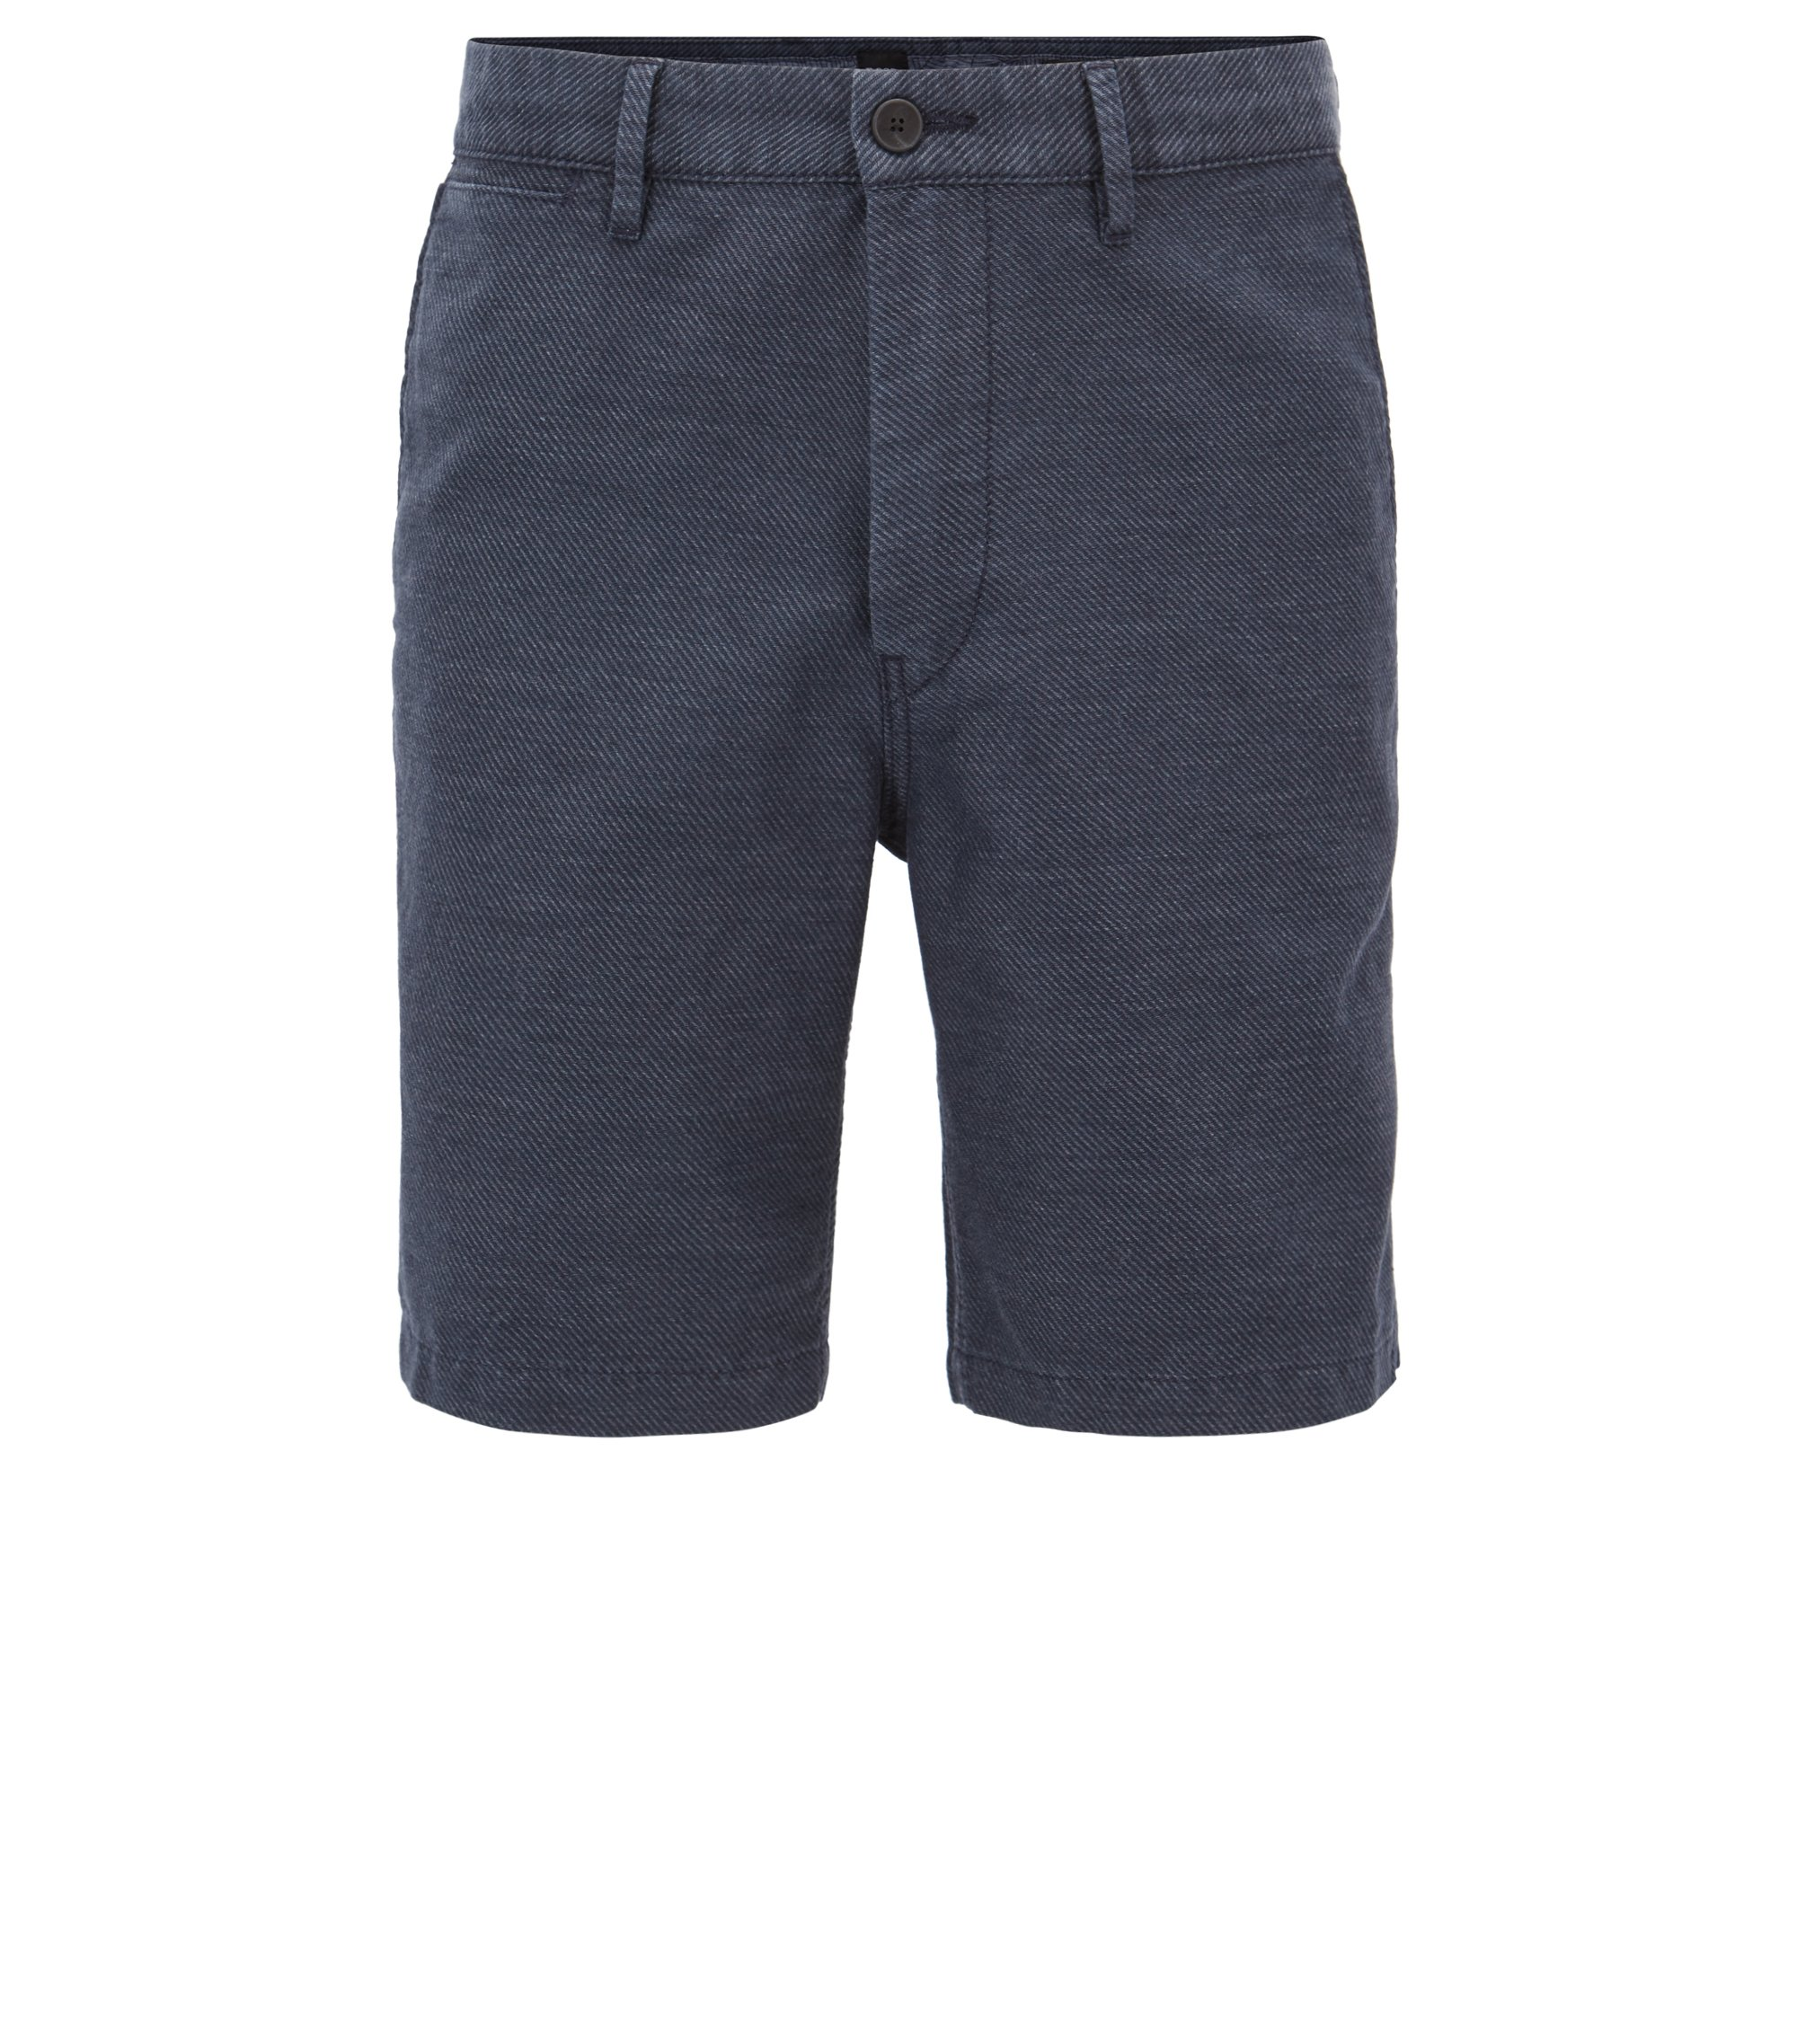 Cotton Linen Blend Short, Tapered Fit | Siman Shorts W, Dark Blue